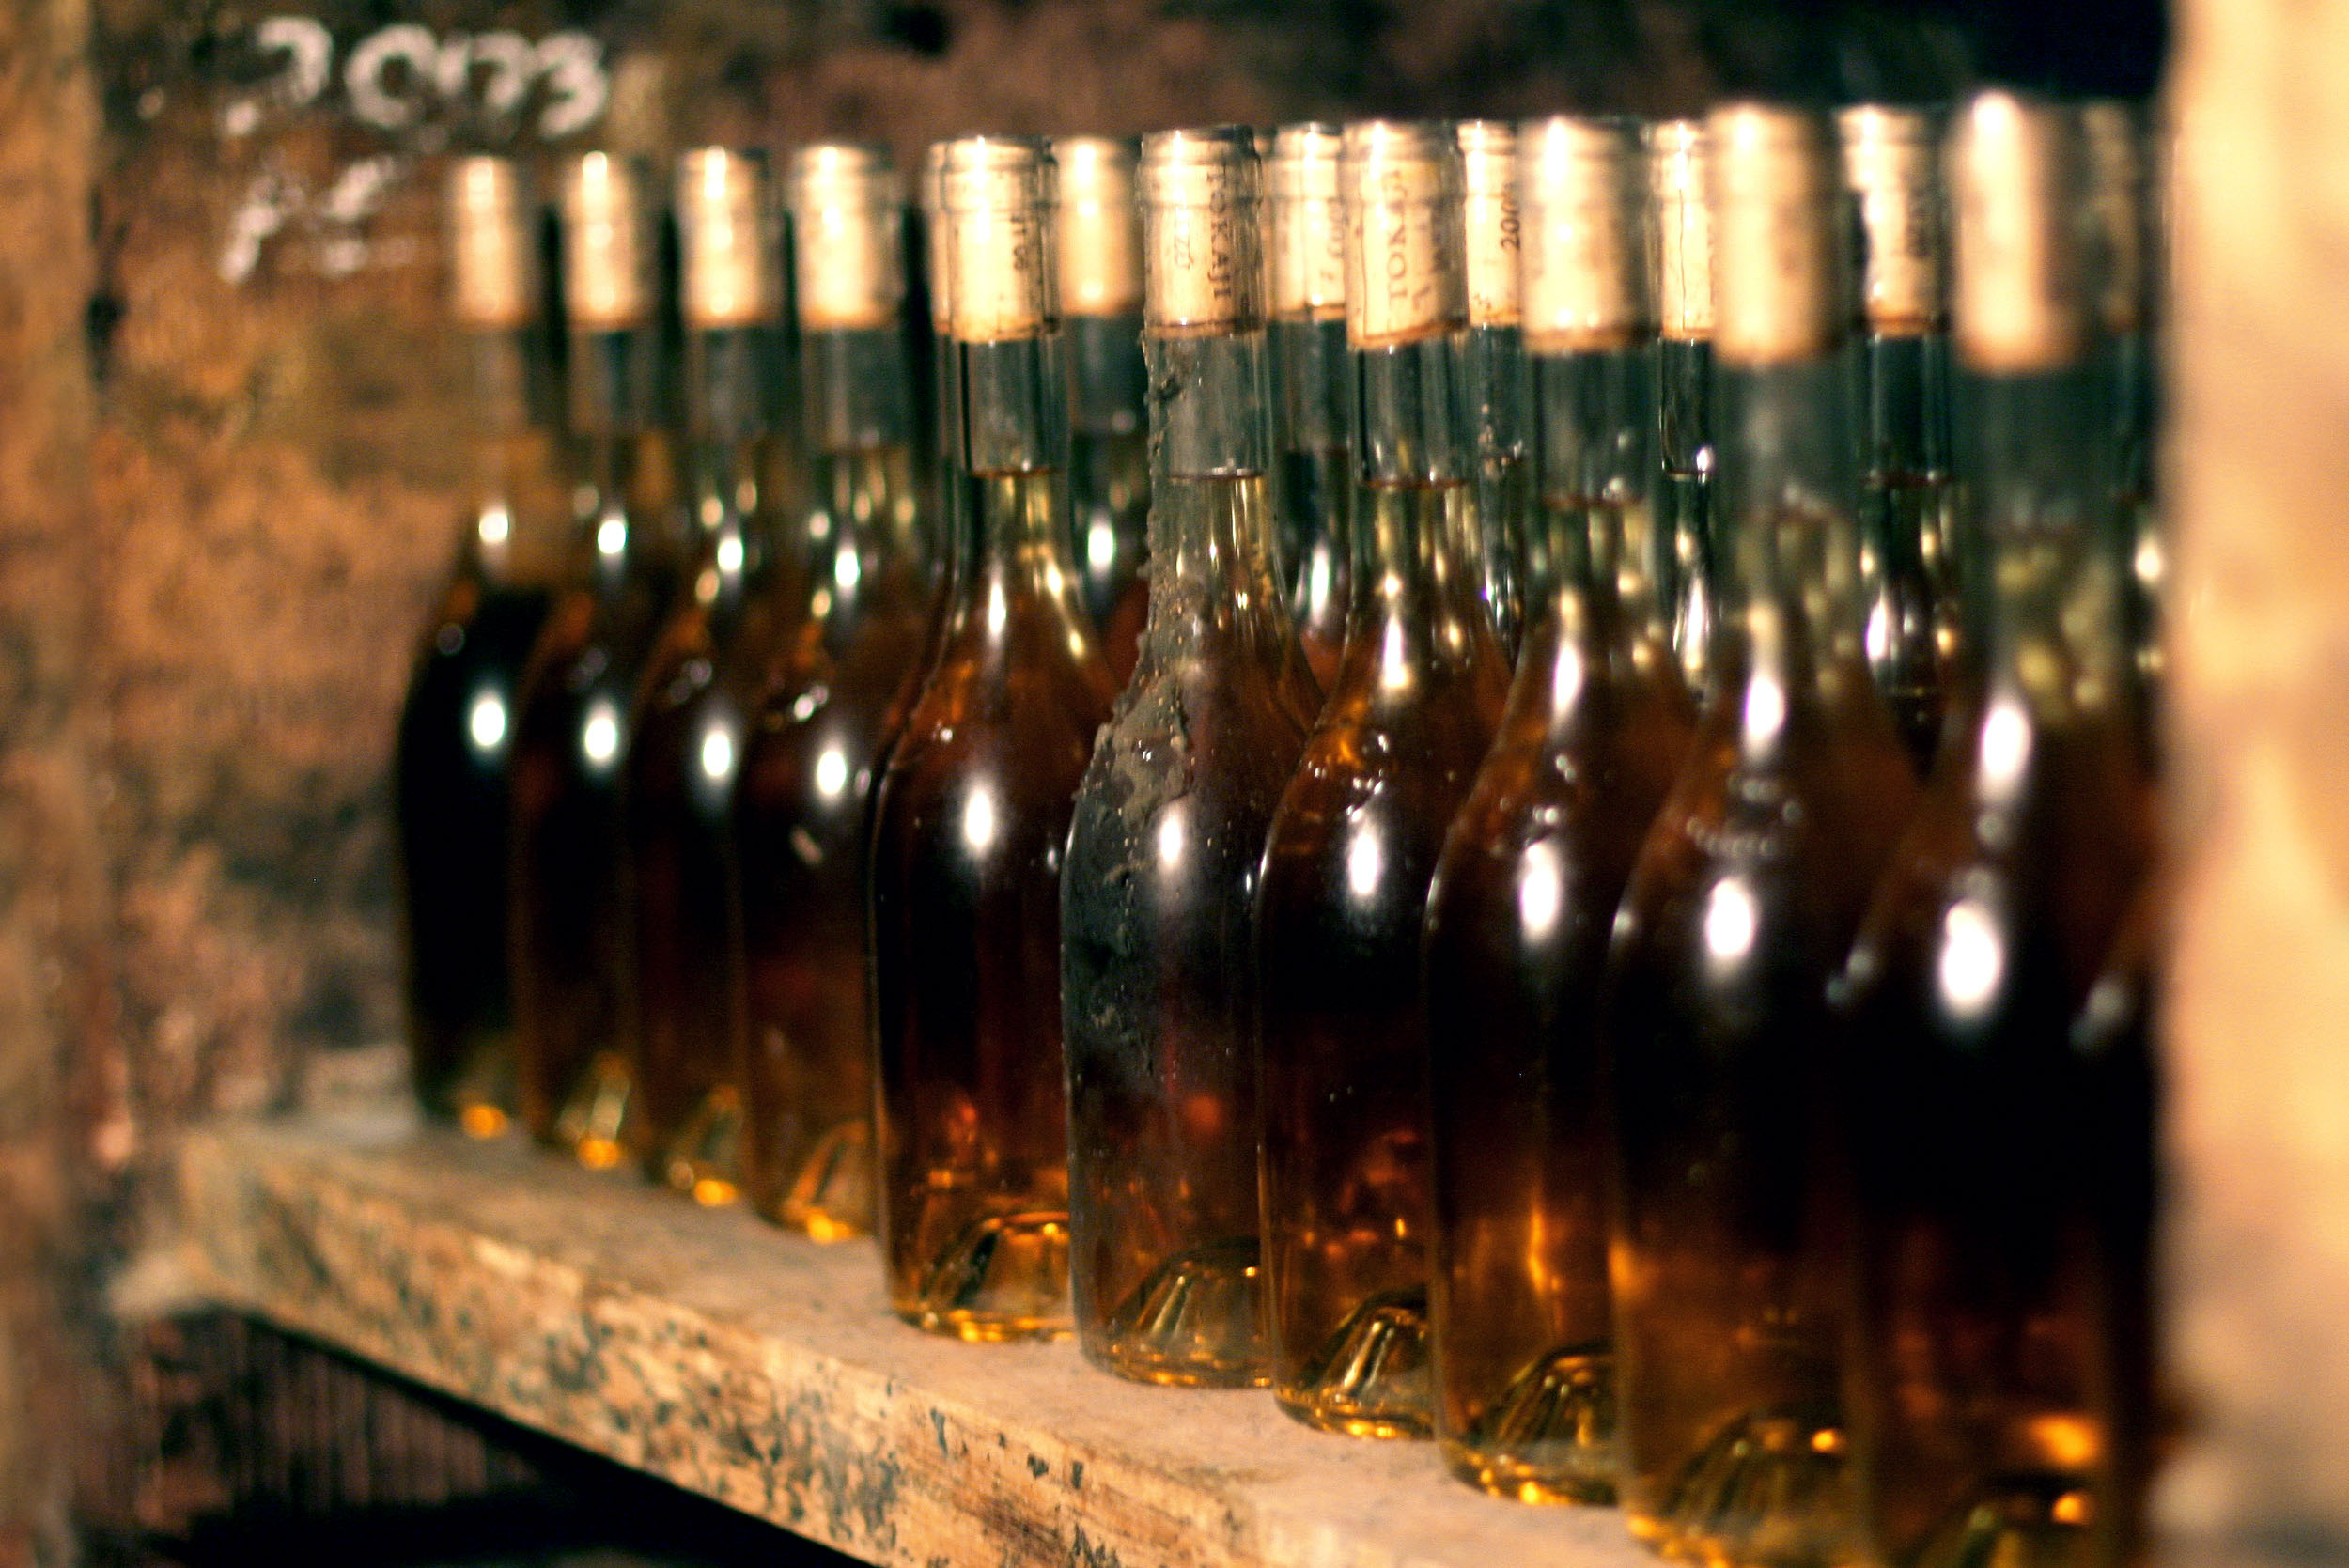 Multiple bottles of tokaj aszú on a wooden shelf